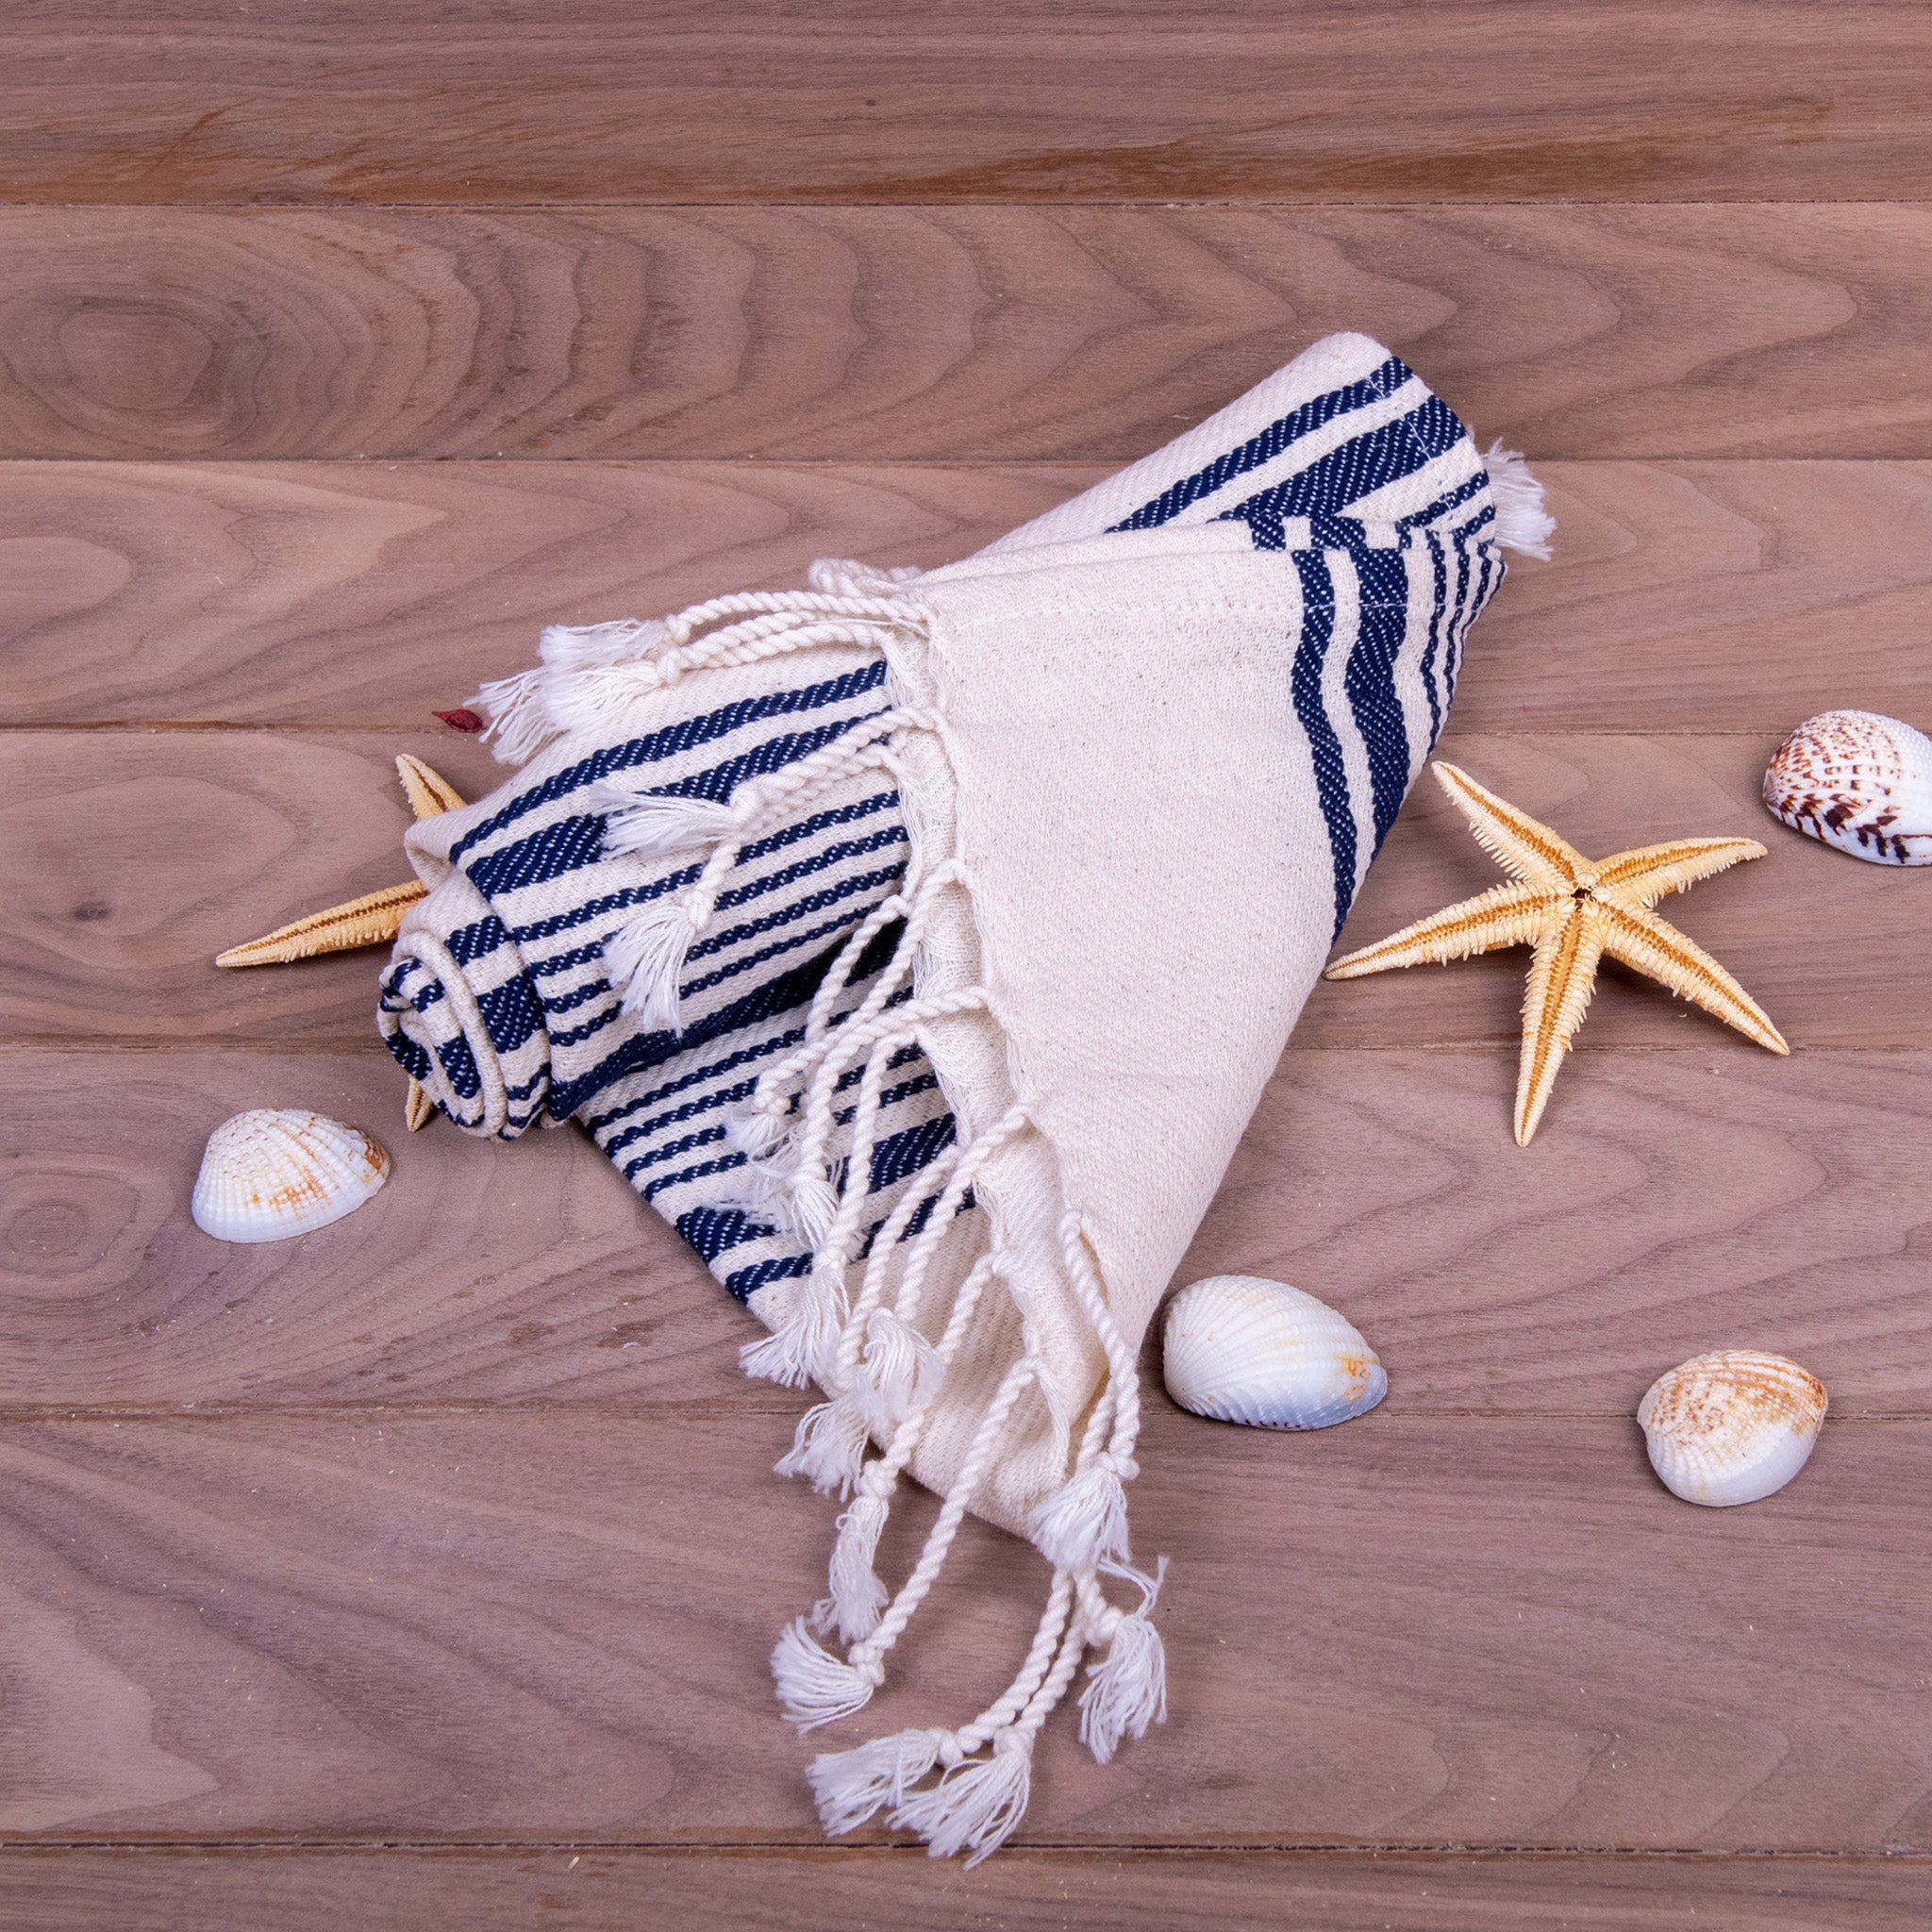 Turkish Towel, Peshkir, Hand Towel With Background - Black